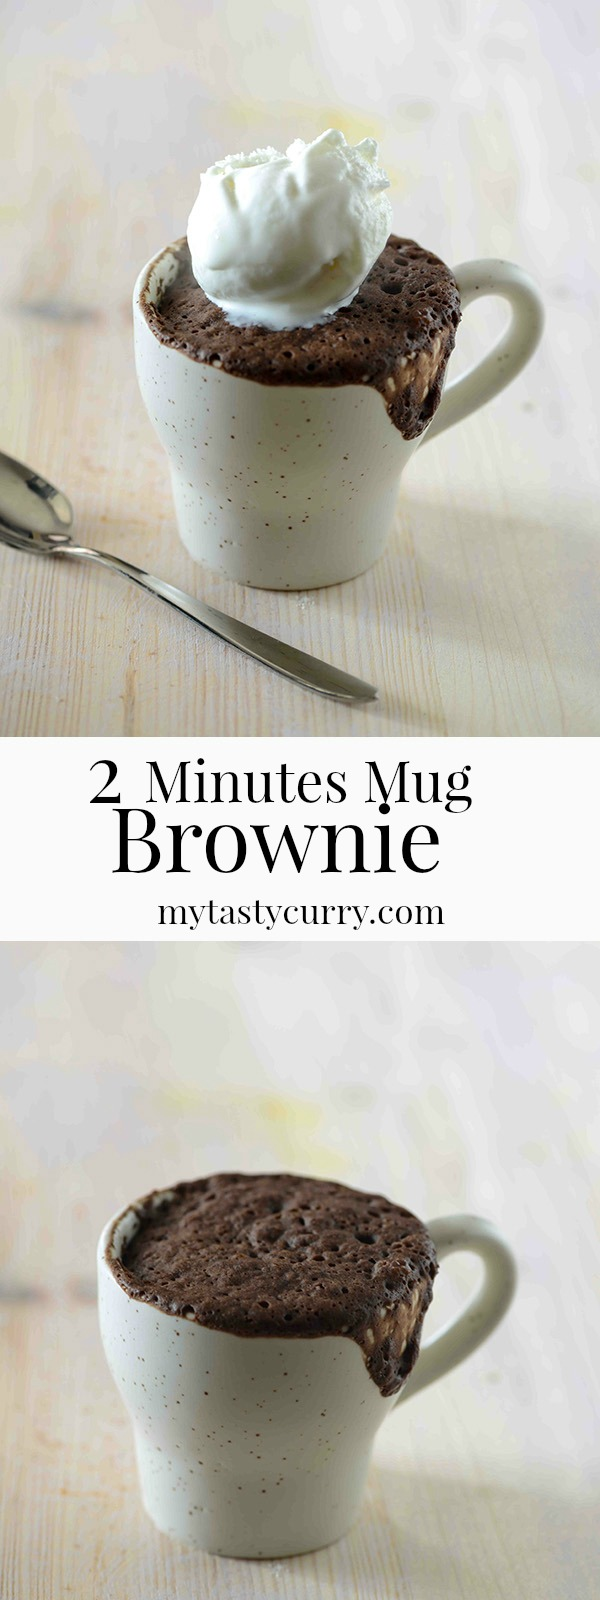 Microwave mug brownie recipe to satisfy your post meal sweet cravings in 2 minutes. Because when you are craving for dessert , you just don't have patience to bake an elaborate cake or cook any other dessert which takes too much time. This 2 minutes microwave mug brownie satisfies all your dessert cravings.